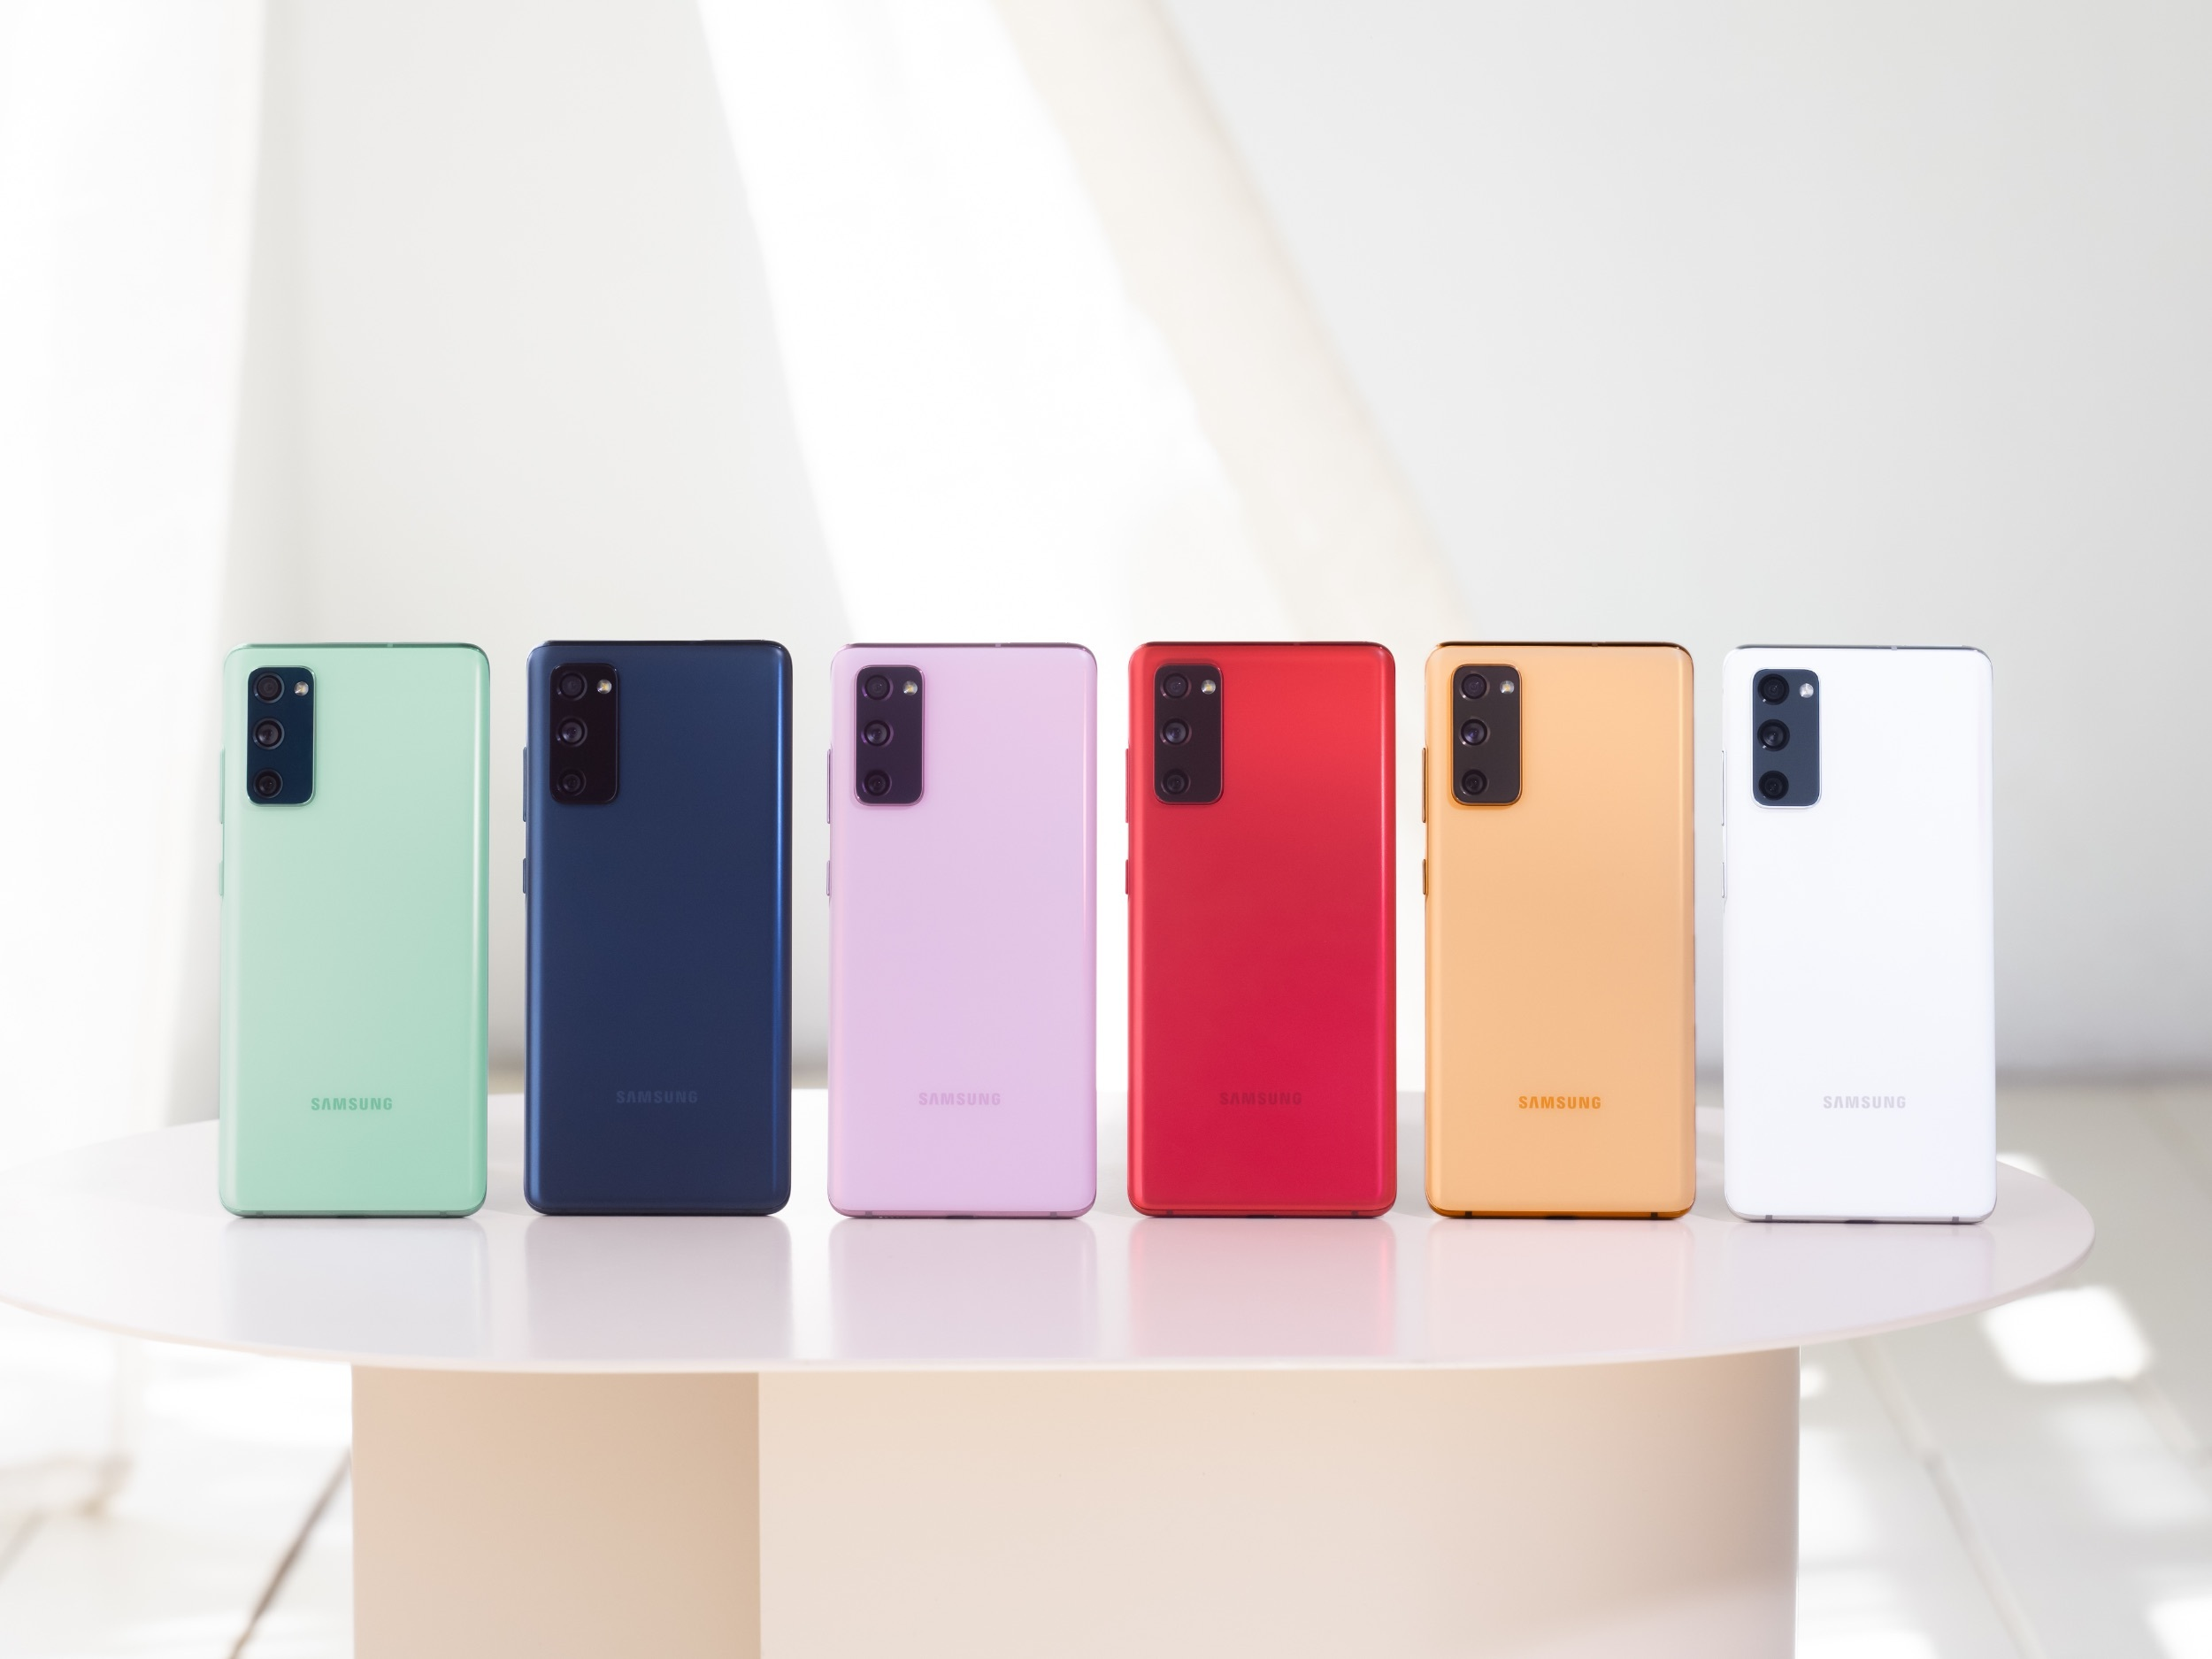 A lineup of Samsung Galaxy S20 FE smartphones standing up on a table